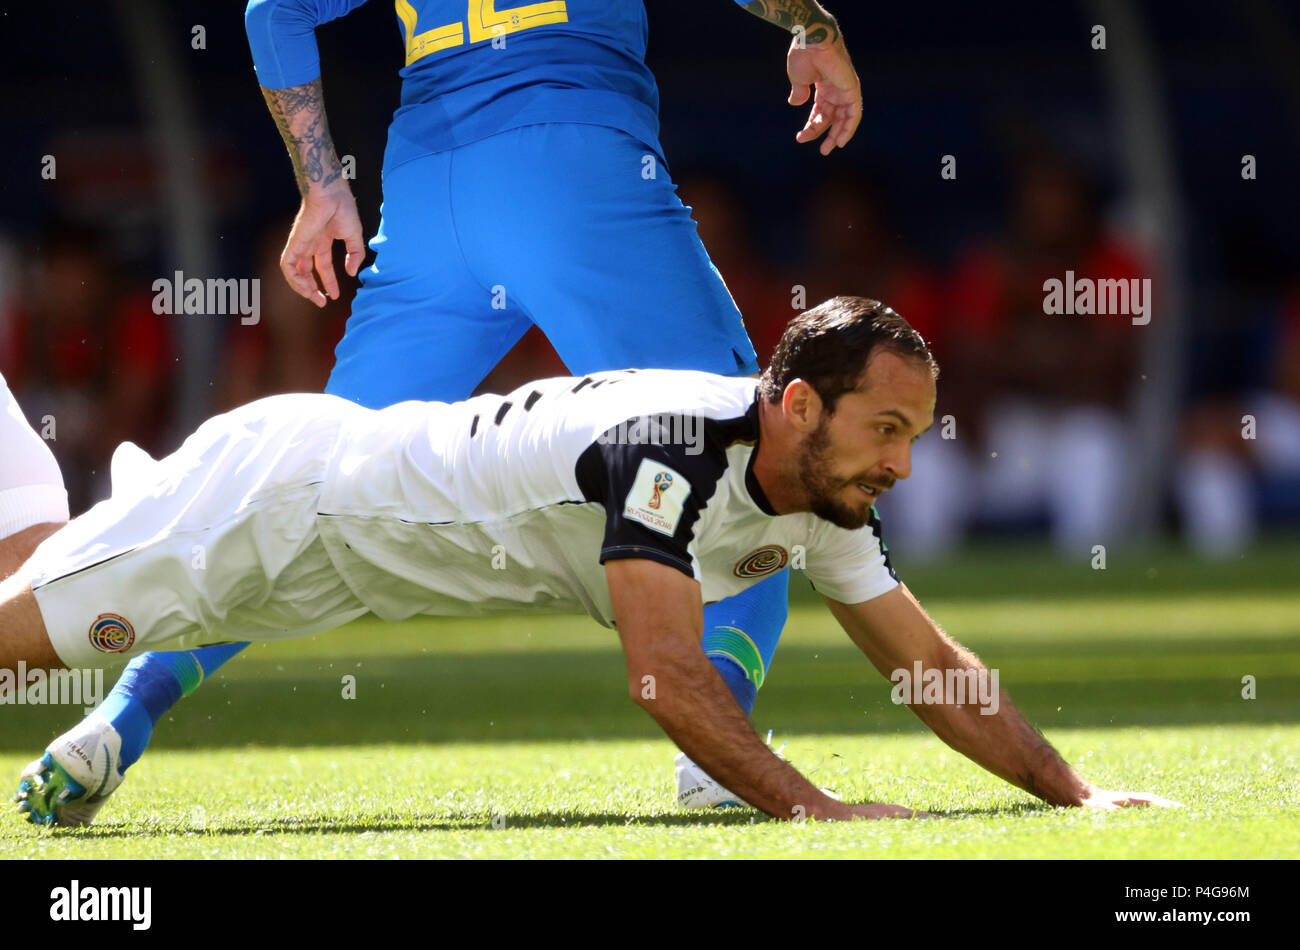 Saint Petersburg, Russian. 22nd June, 2018. 22.06.2018. Saint Petersburg, Russian: UTERO in action during the Fifa World Cup Russia 2018, Group E, football match between BRAZIL V COSTARICA IN Saint Petersburg Stadium. Credit: Independent Photo Agency/Alamy Live News - Stock Image